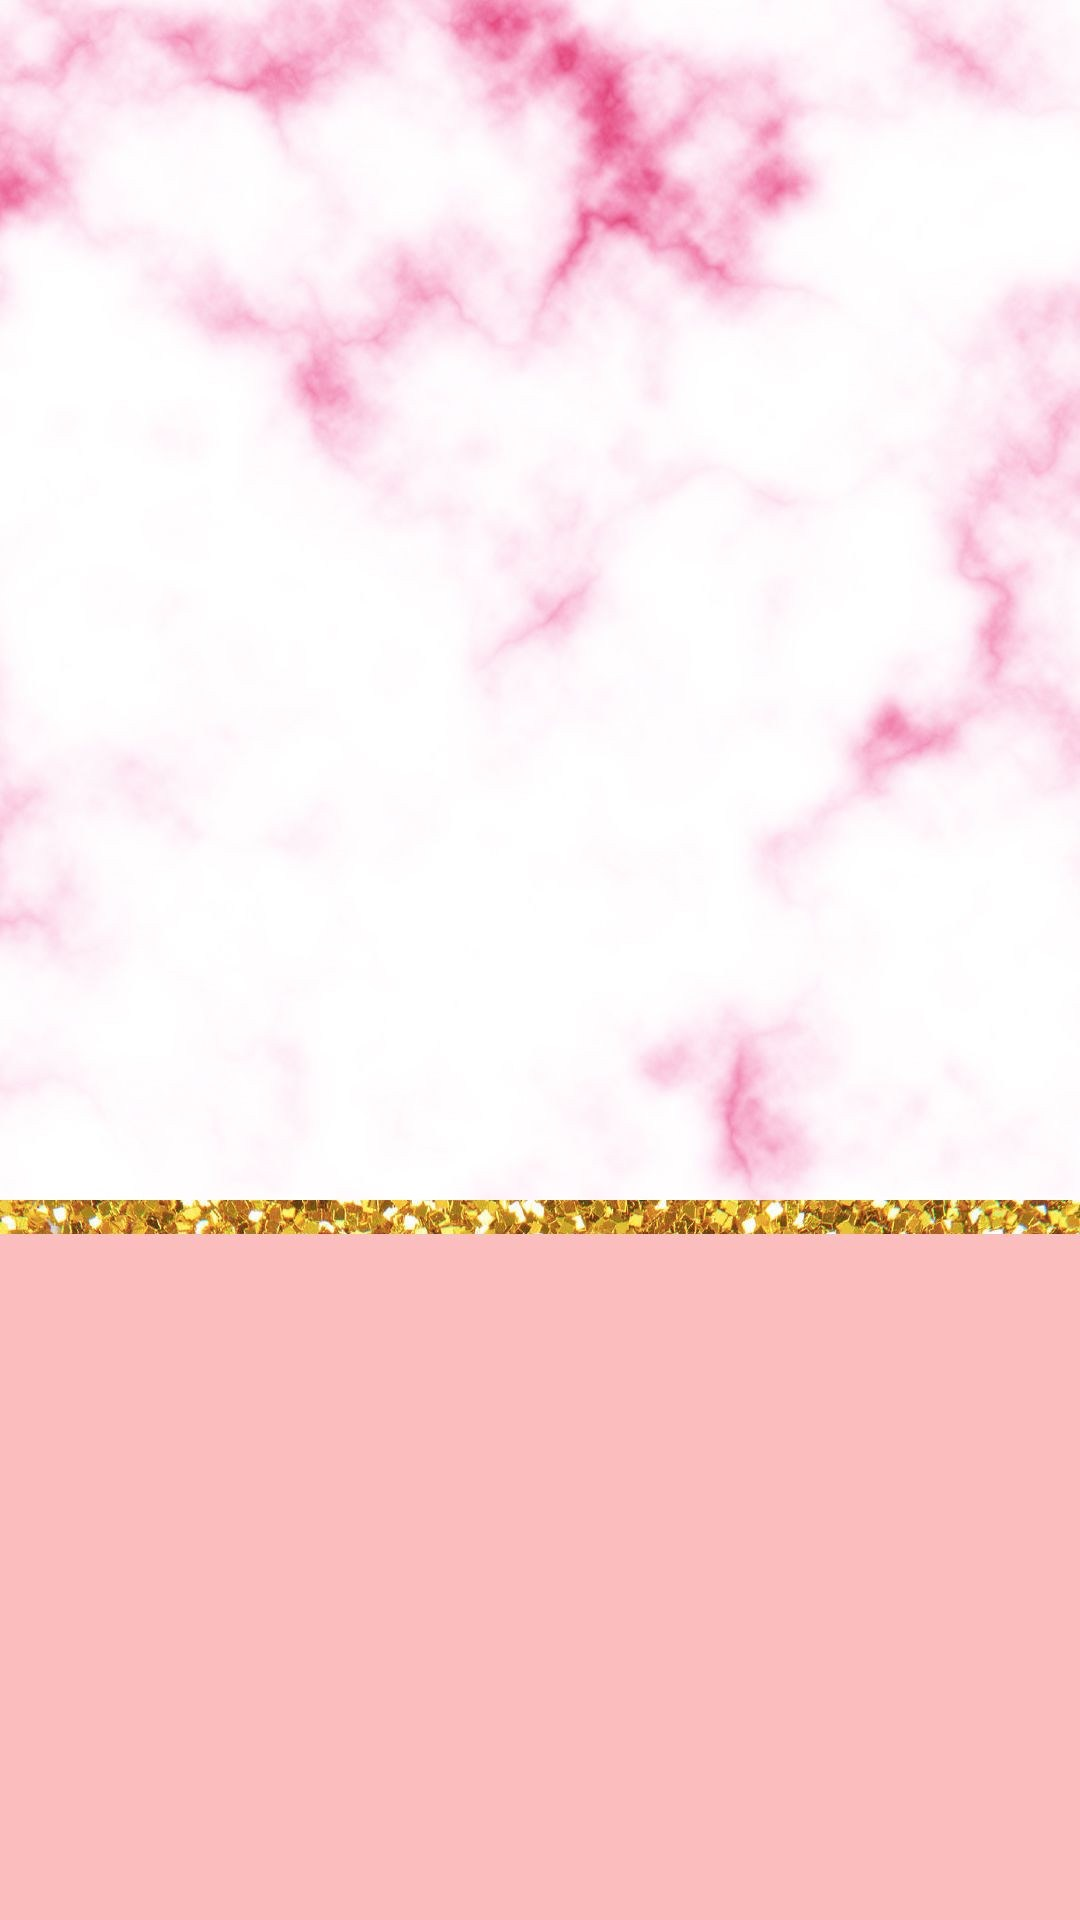 Marble Wallpaper Tumblr Quotes Gold And Pink Background 337610 Hd Wallpaper Backgrounds Download